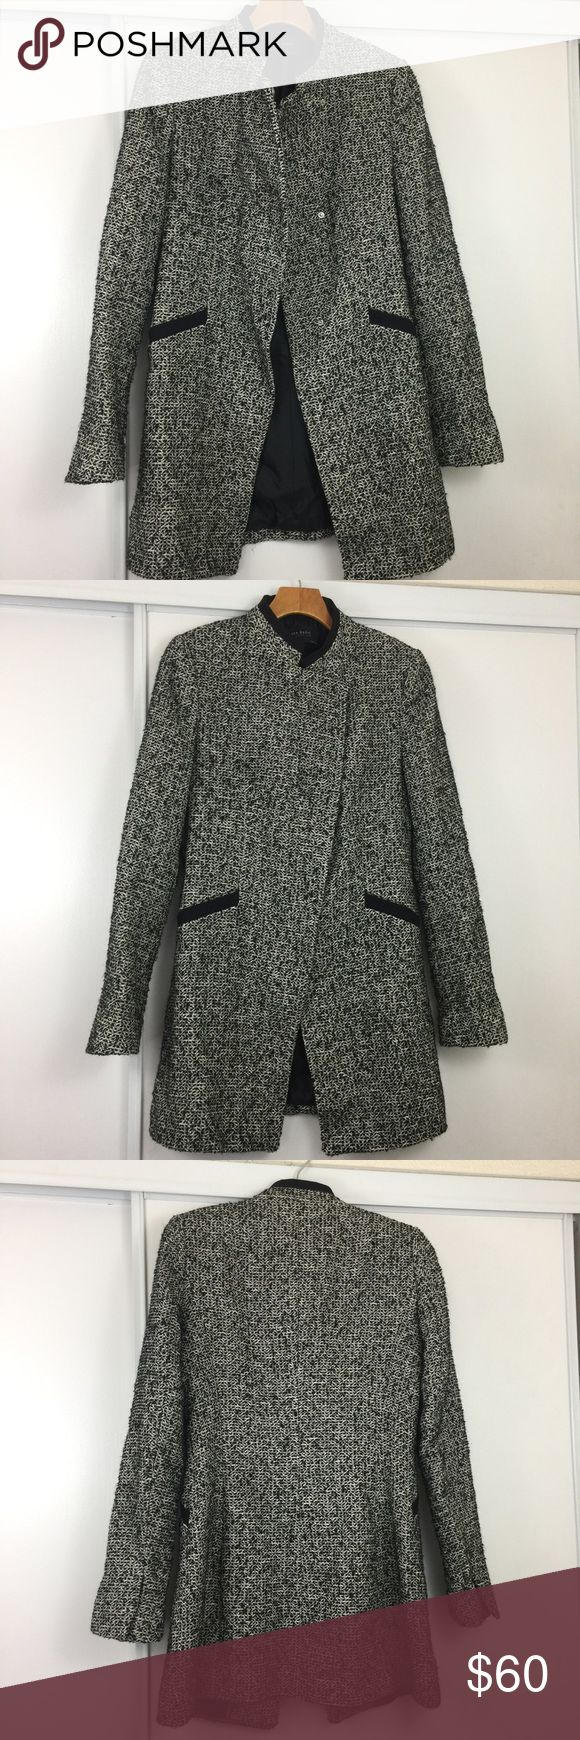 "Zara Winter Coat ❣️ Excellent condition. Size medium. Pit to pit 17.5"". Length 30.5"". No trades ❌❌ No modeling Zara Jackets & Coats"